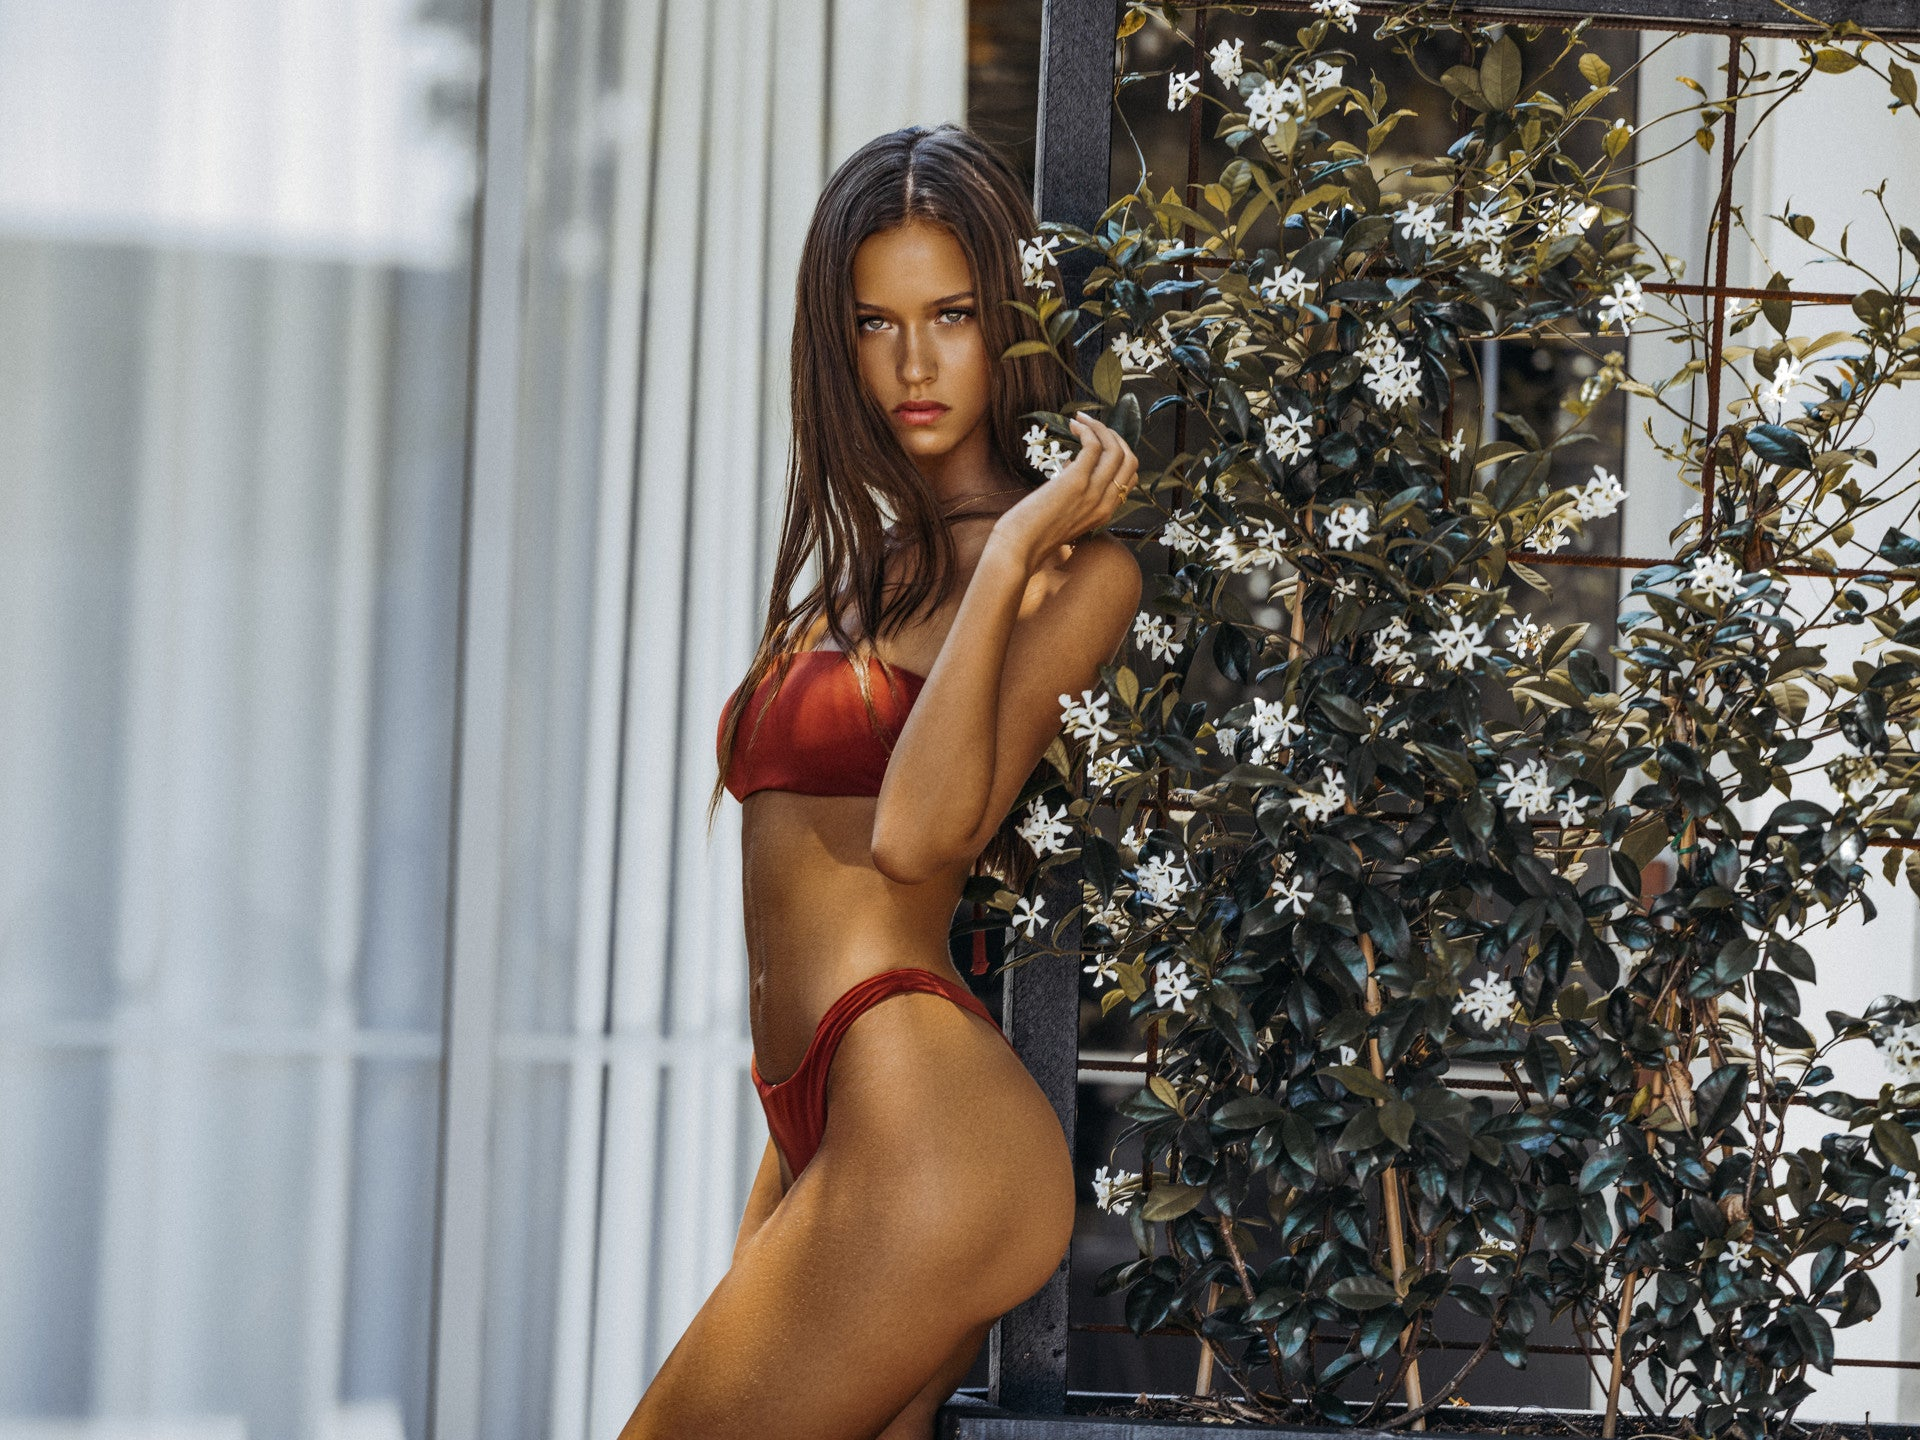 Isabelle Mathers wearing the For You Red Bandeau Top and Bottom